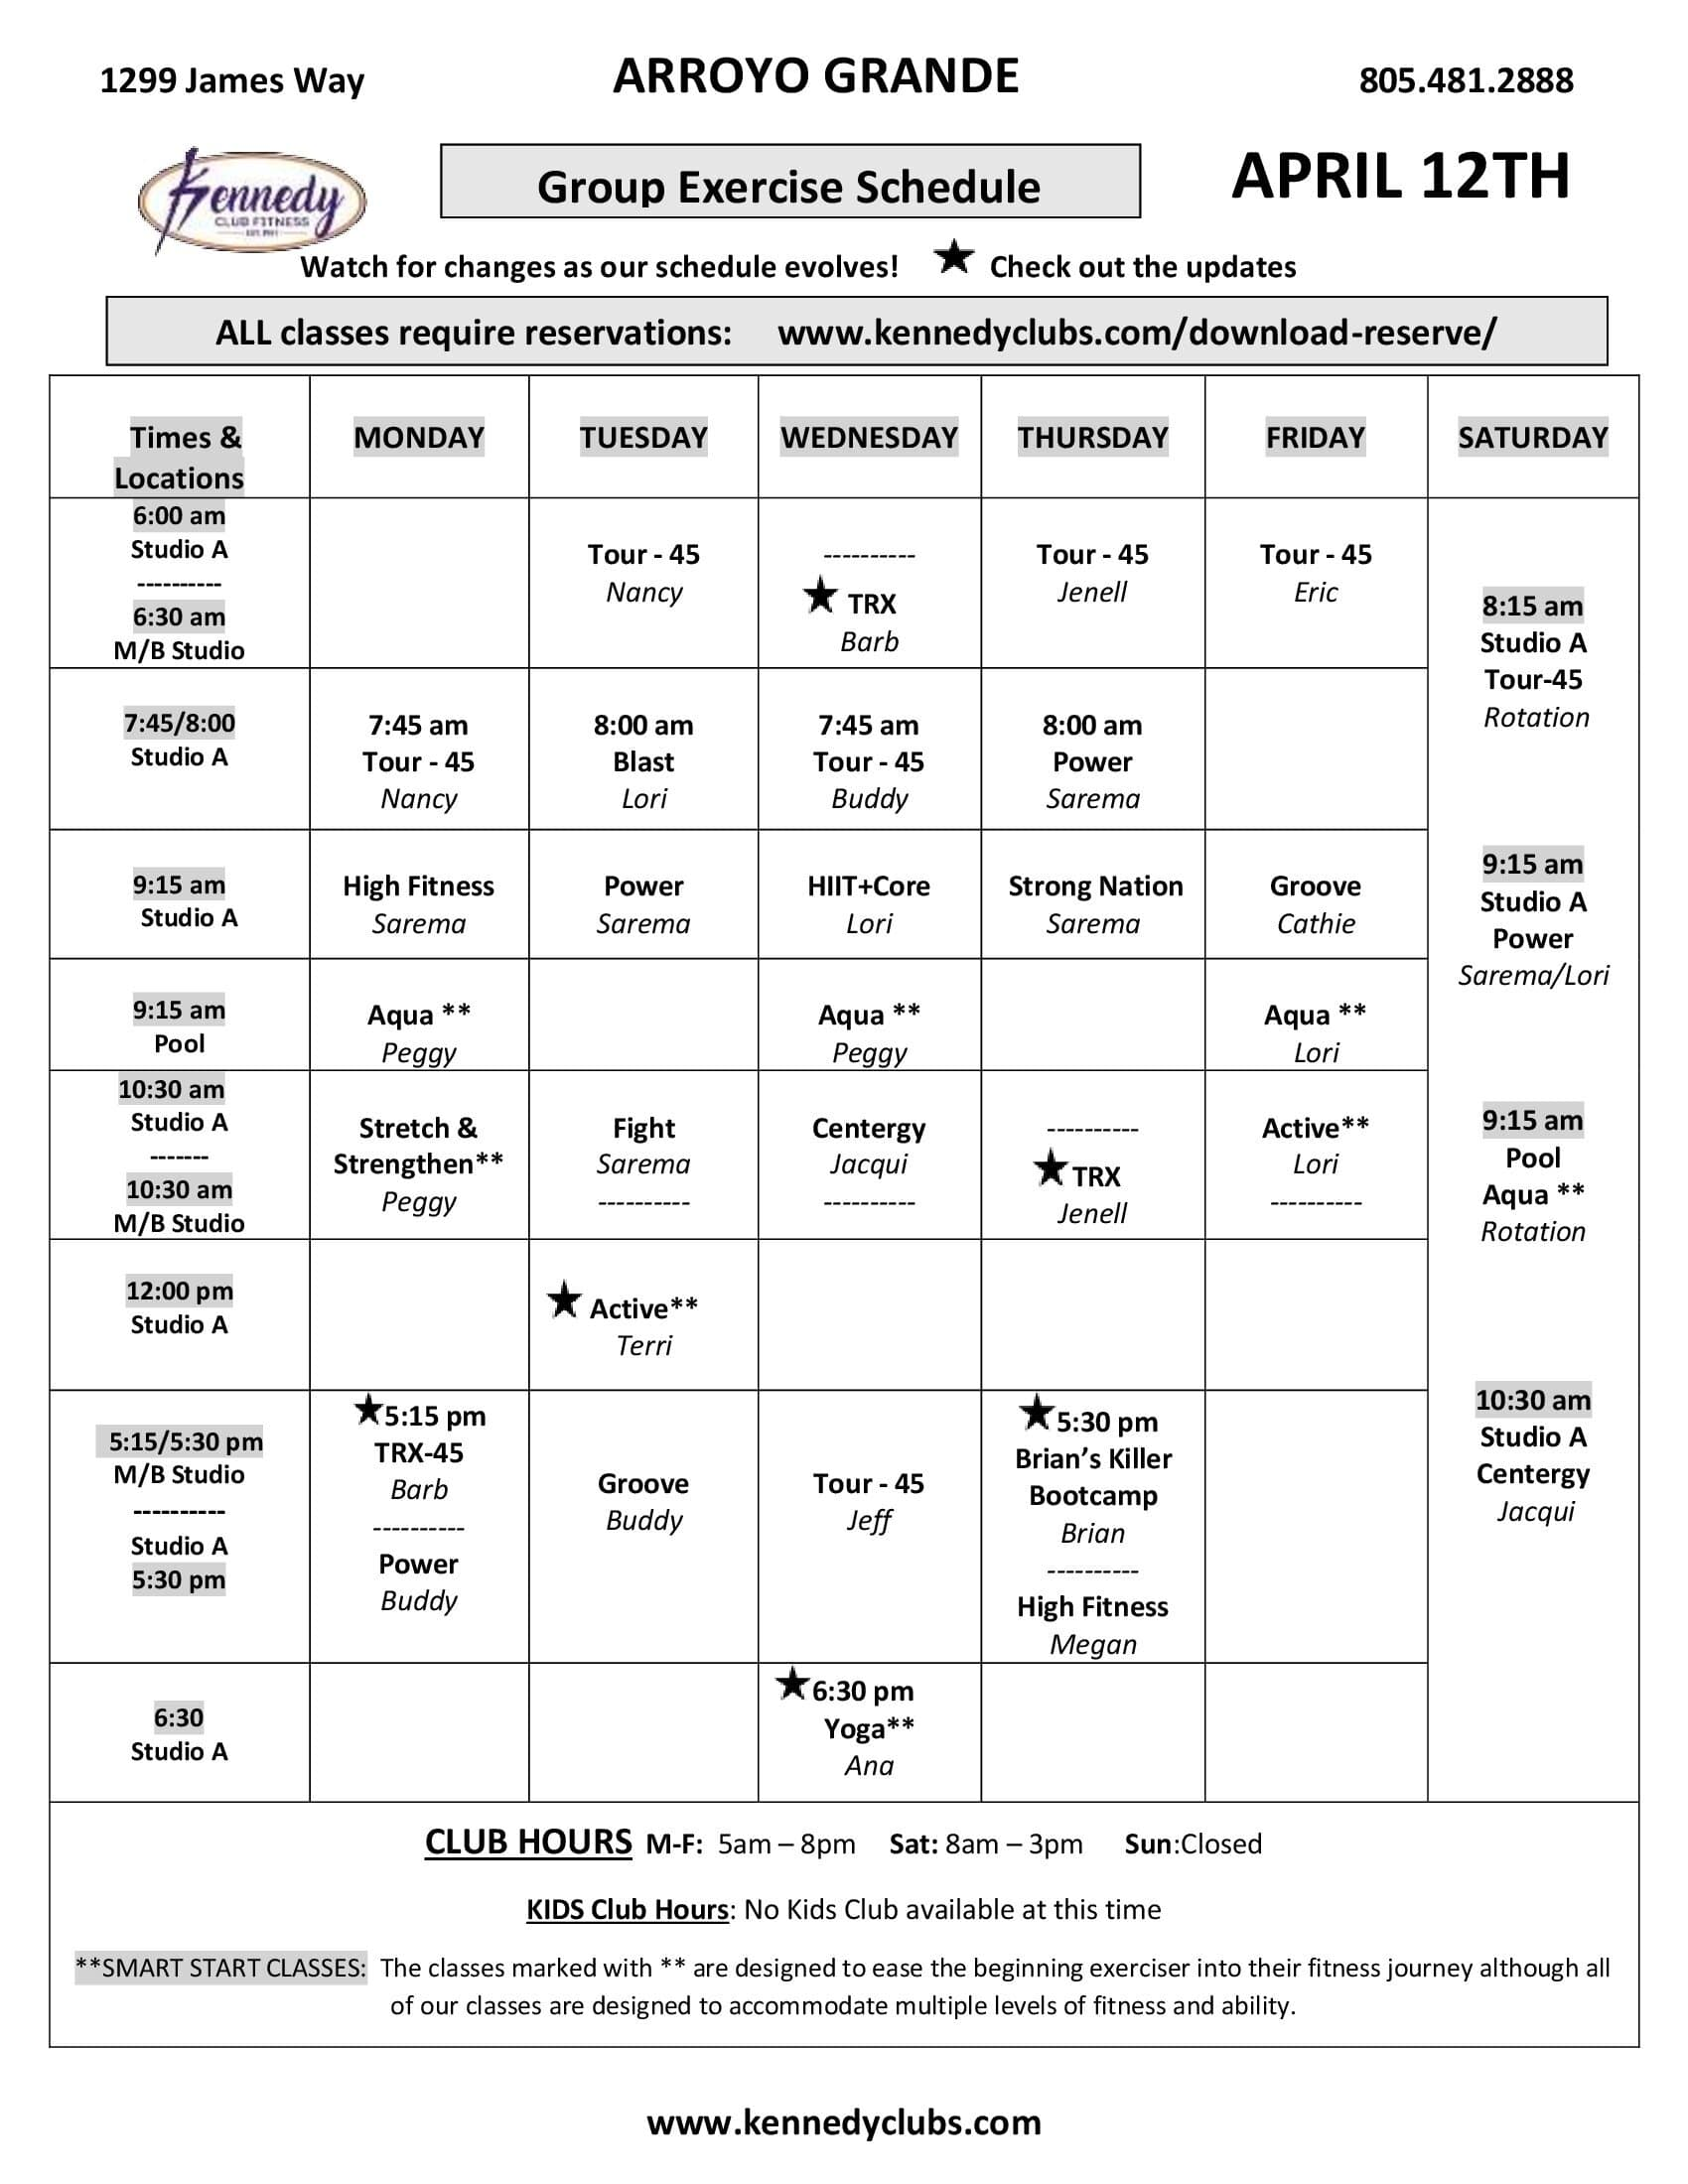 Kennedy Club Fitness Arroyo Grande Group Exercise Schedule 04 13 2021